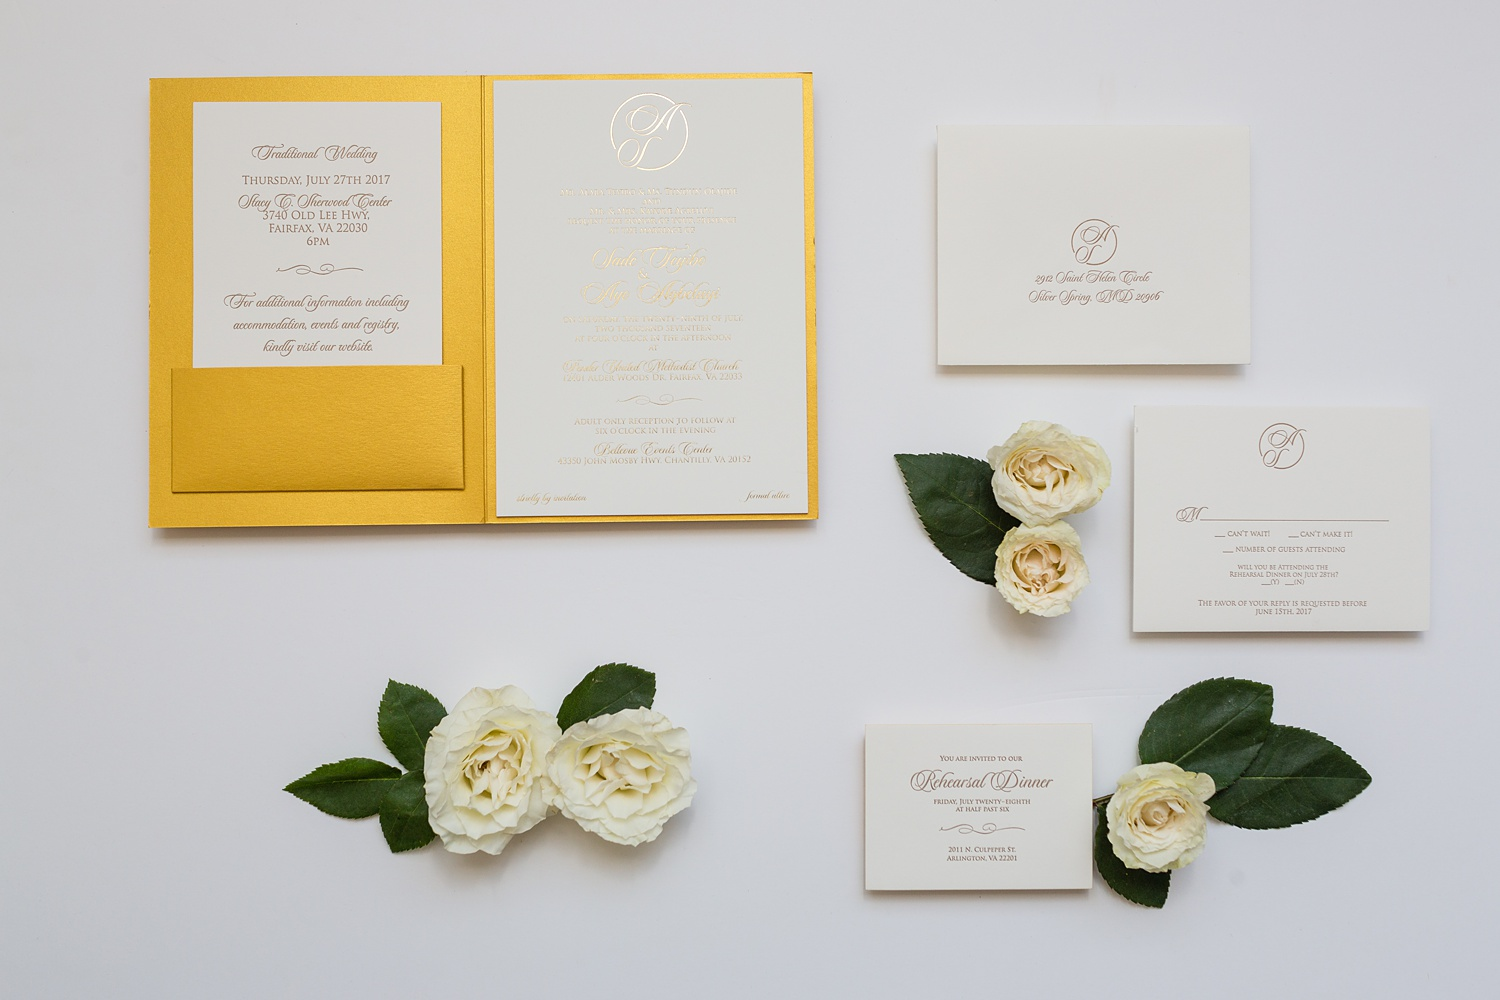 Newly Engaged Advice Nigerian wedding invite at Bellevue Conference